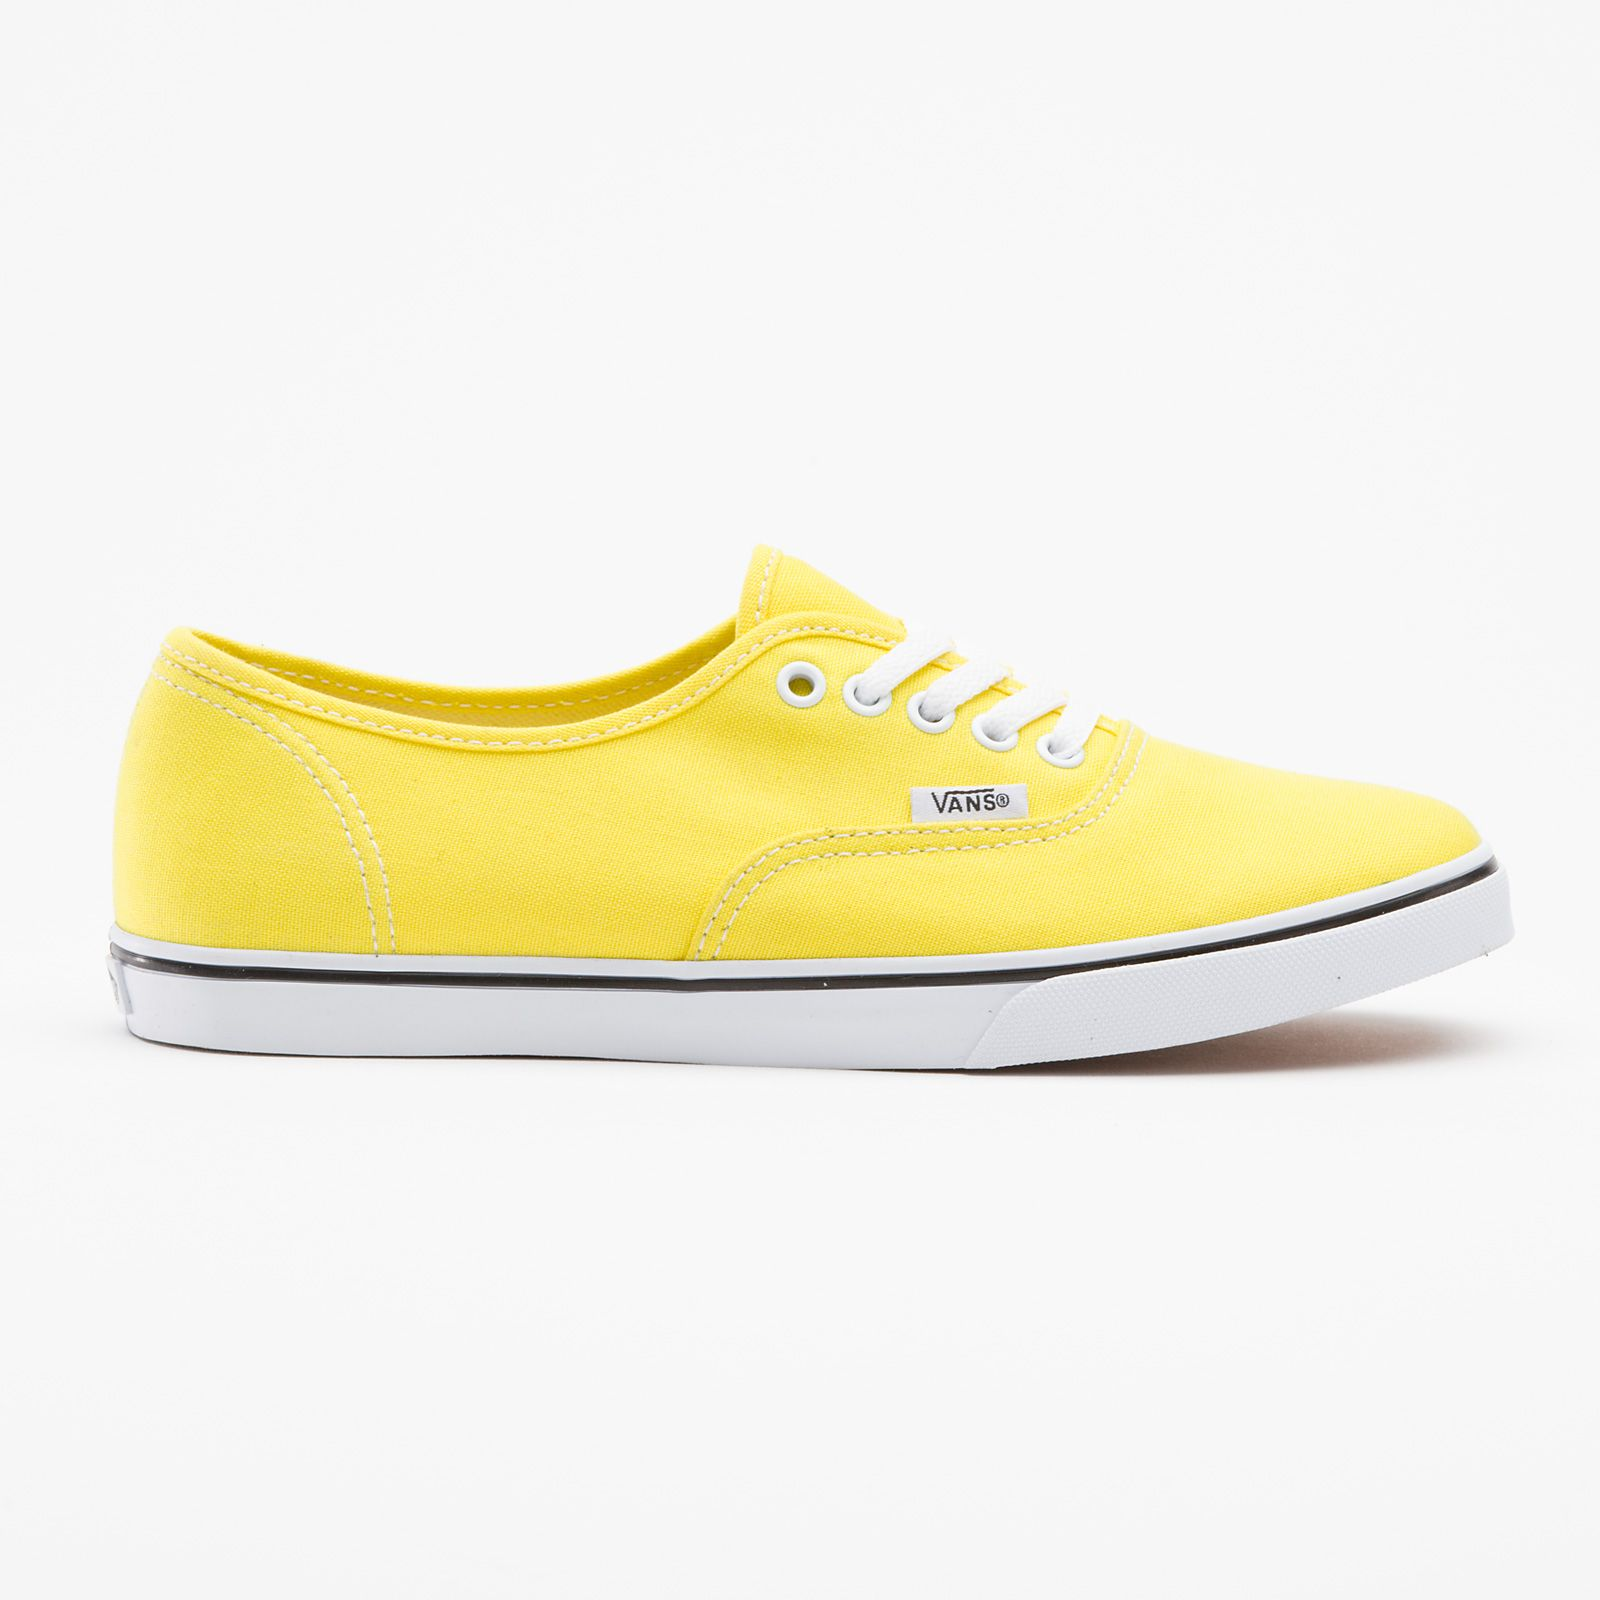 68bd782dcec Last time I tried to order yellow vans